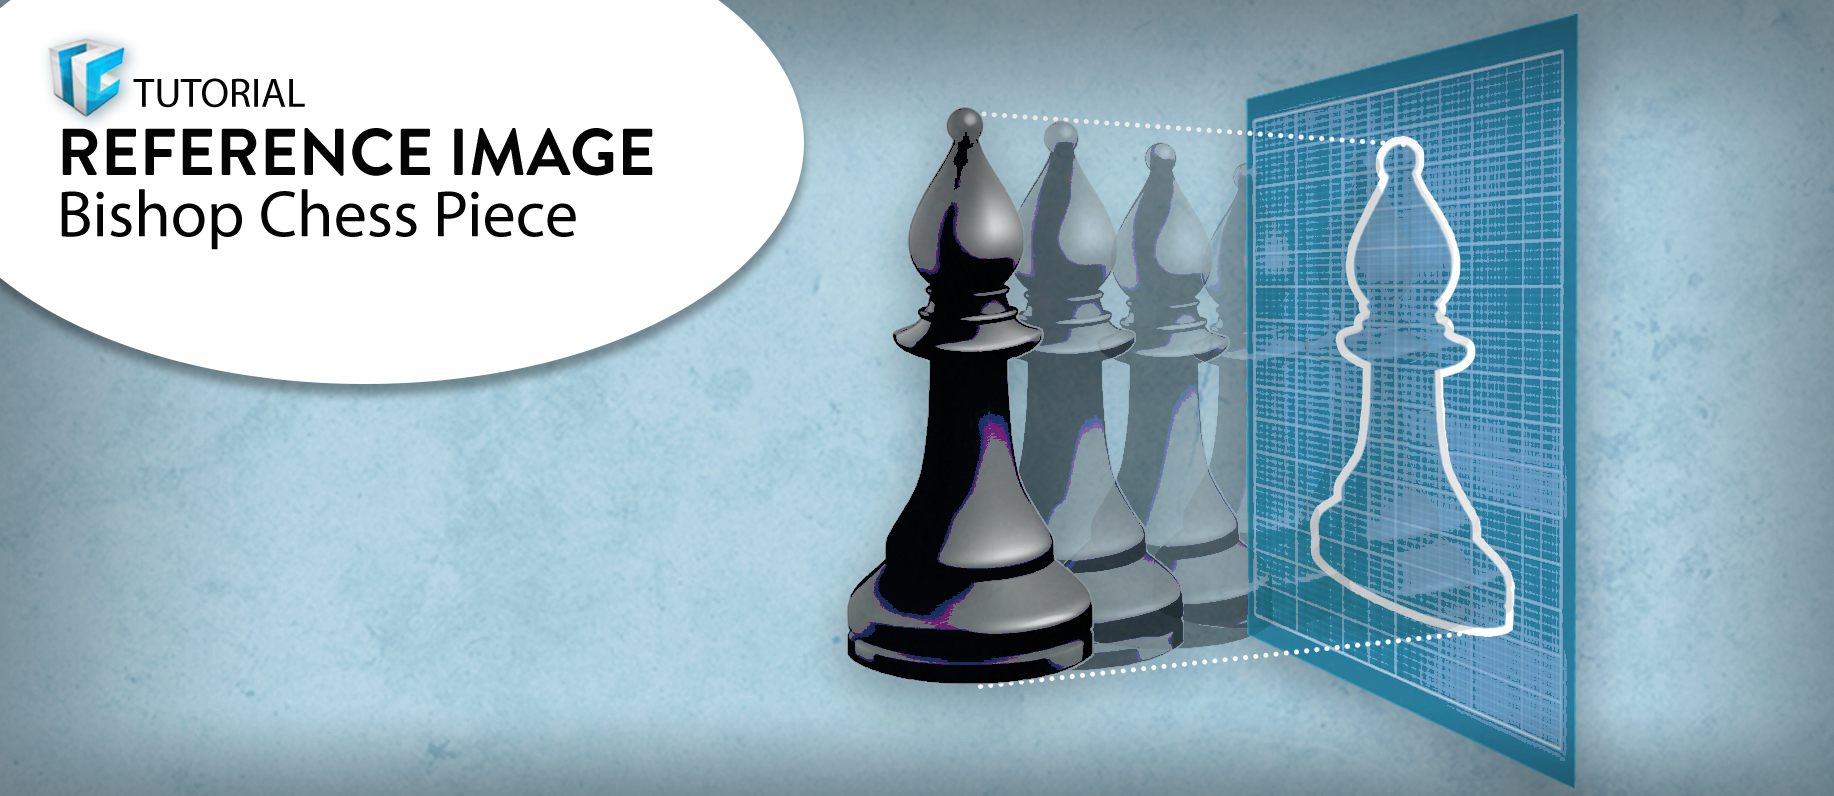 Learn SelfCAD- An online 3D modeling Software: Reference Image